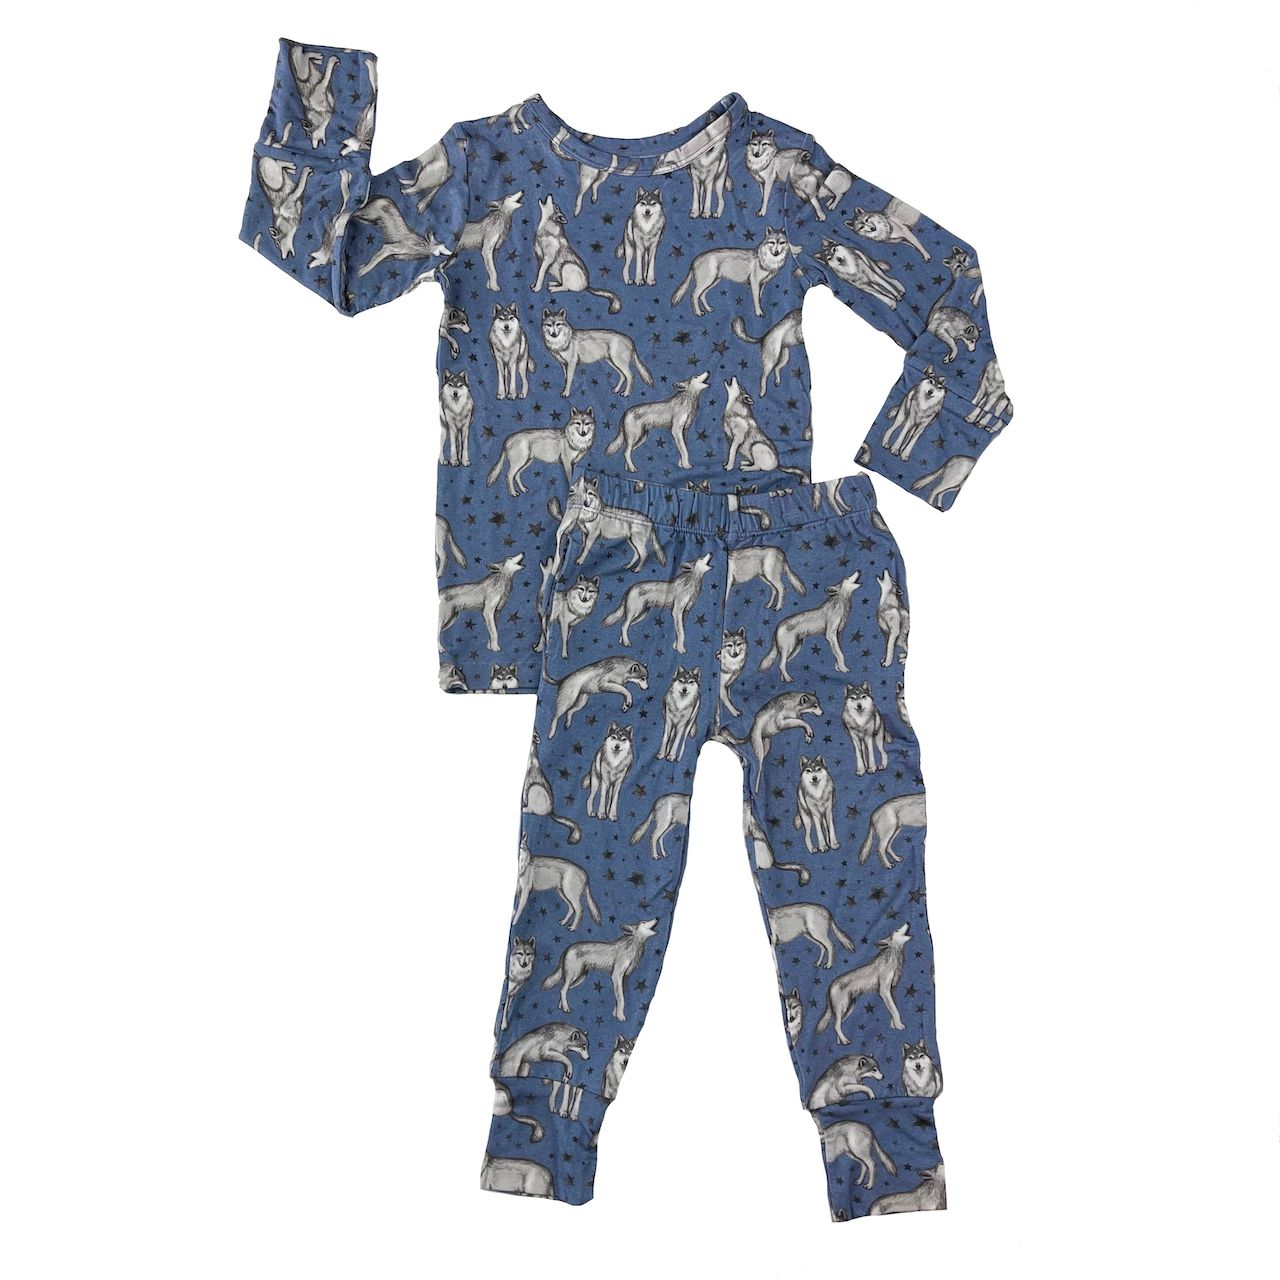 Muse Threads Night Wolves PJ Set